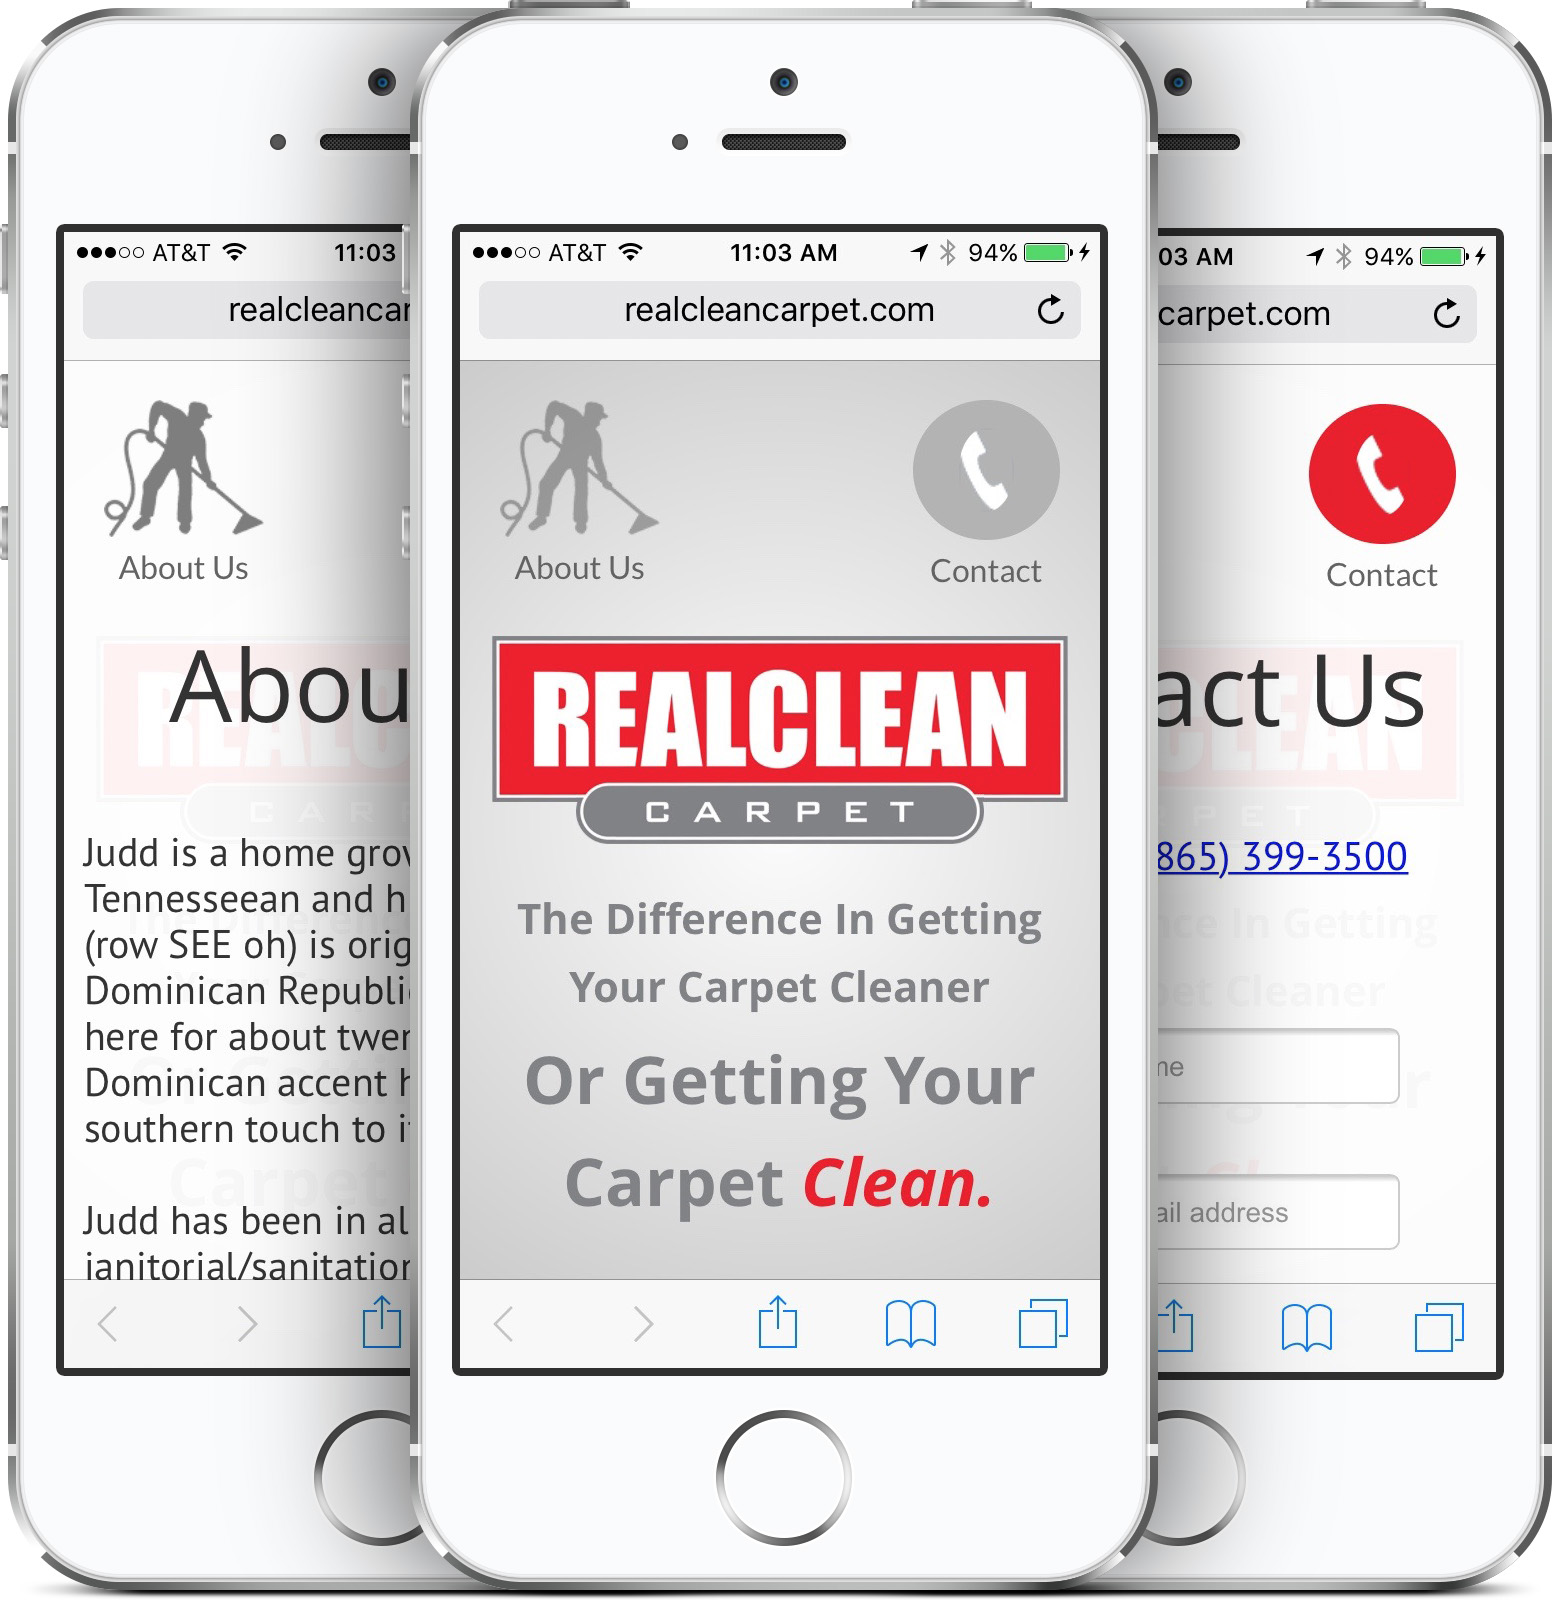 REALCLEAN Carpet Mobile-Friendly Website Design